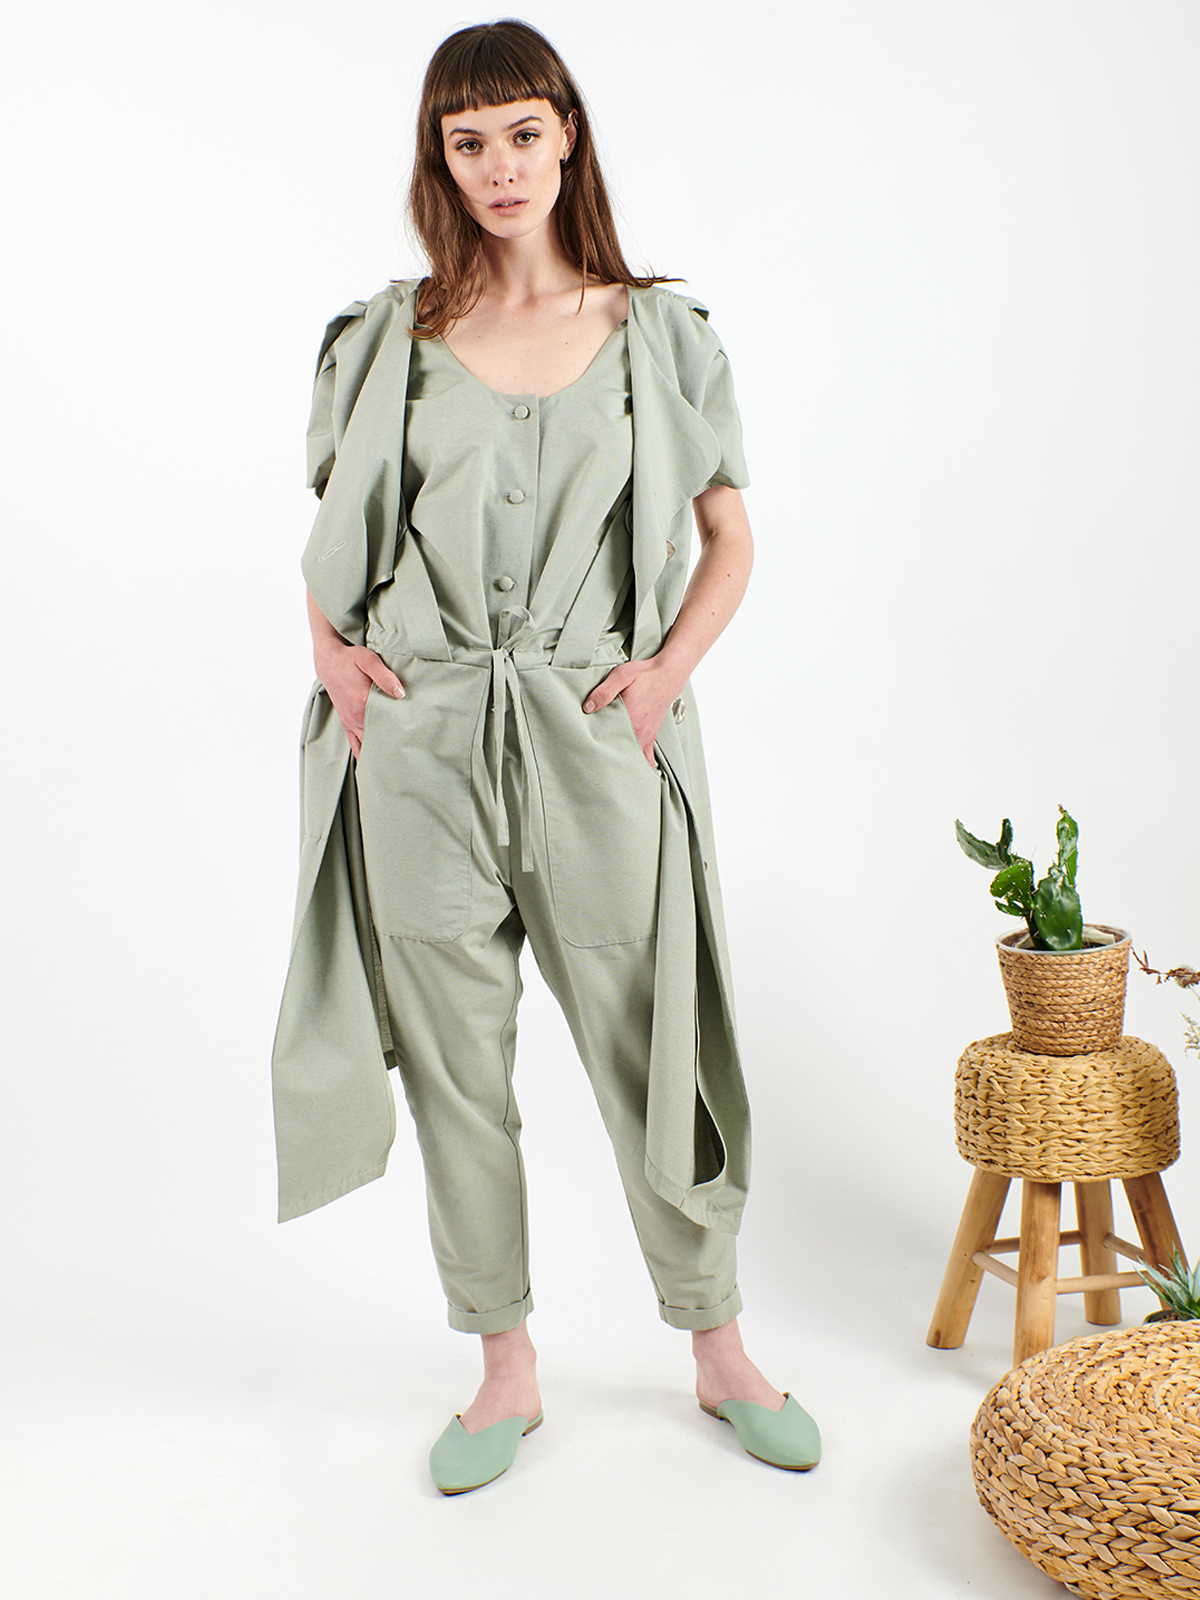 2 in 1 jumpsuit with front vest included